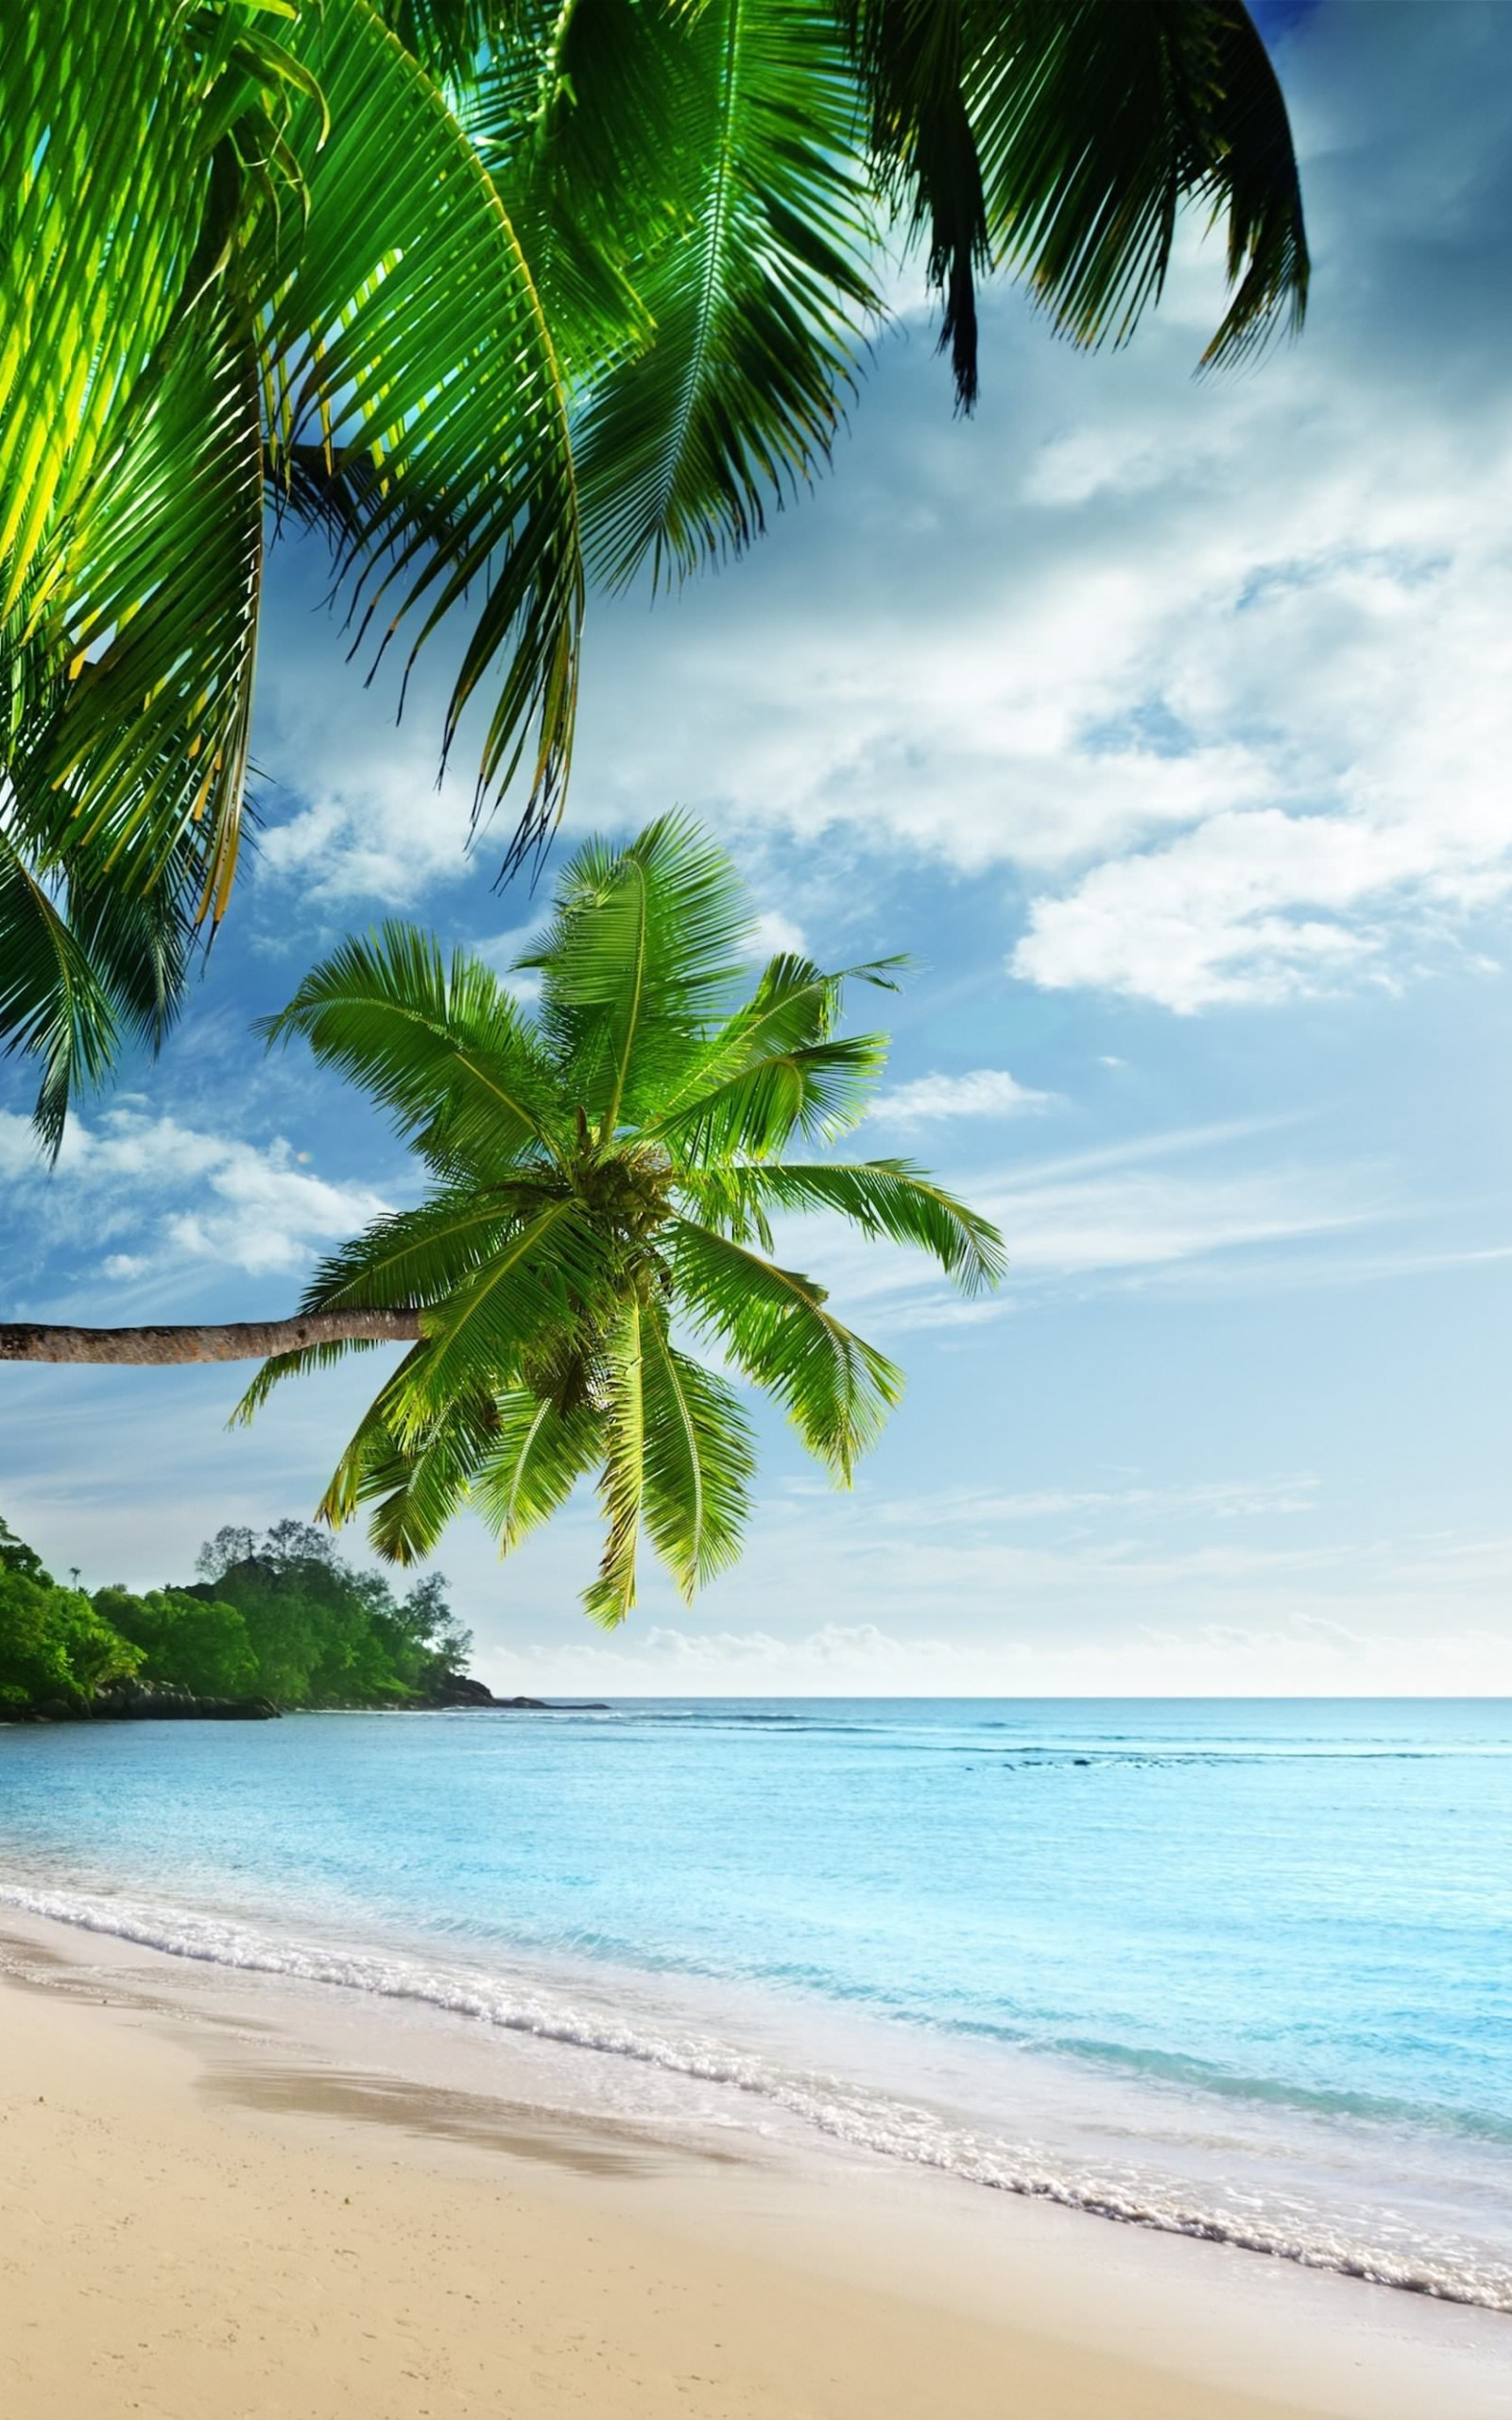 Tropical Paradise Beach Wallpaper for Amazon Kindle Fire HDX 8.9